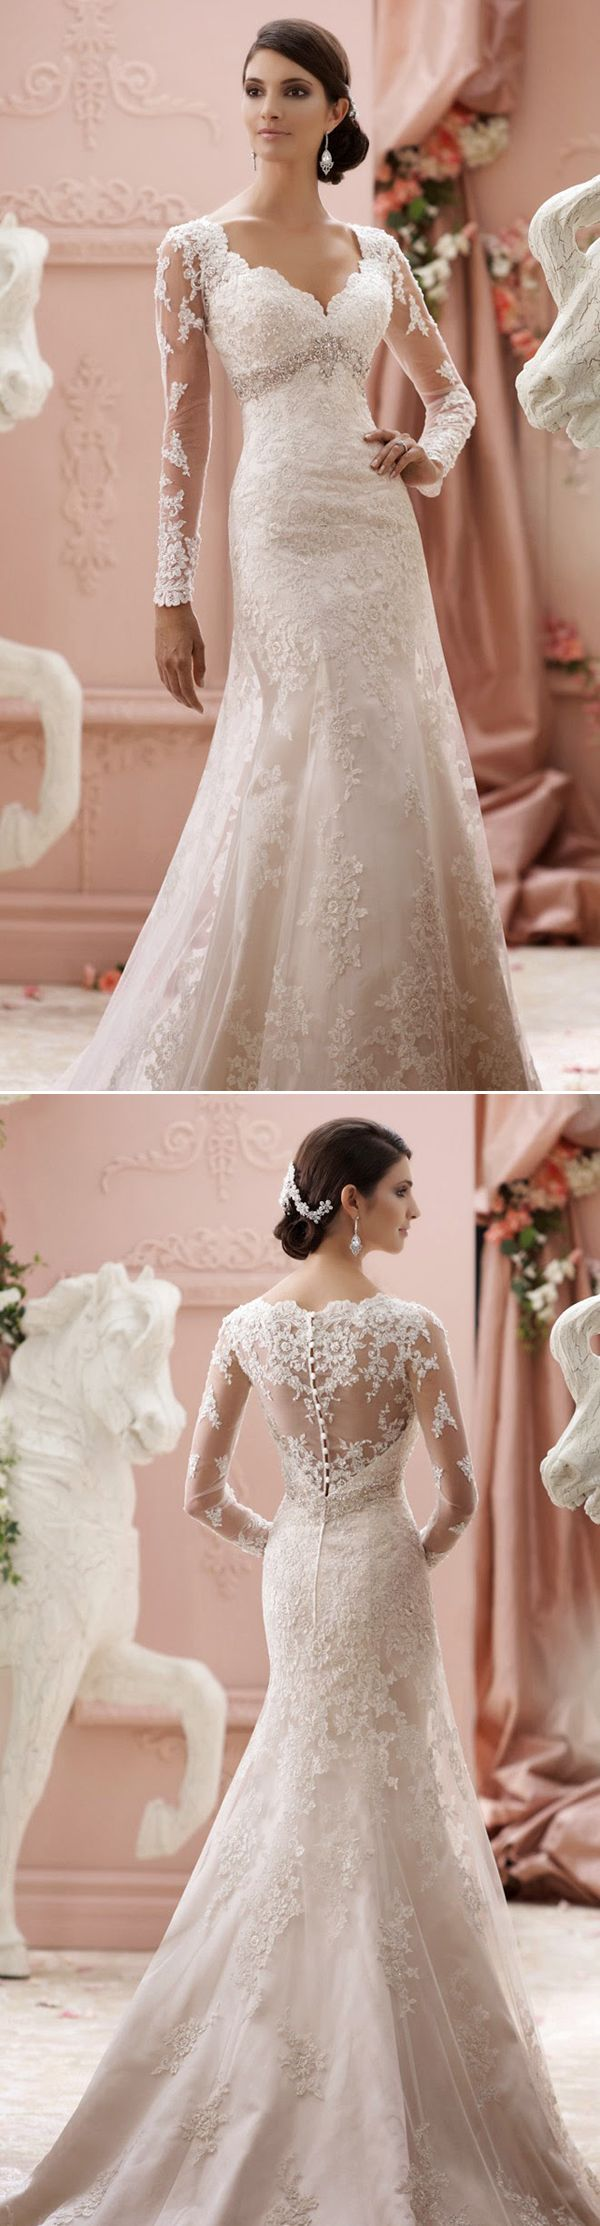 30 of the Most Beautiful Long Sleeve Wedding Dresses of